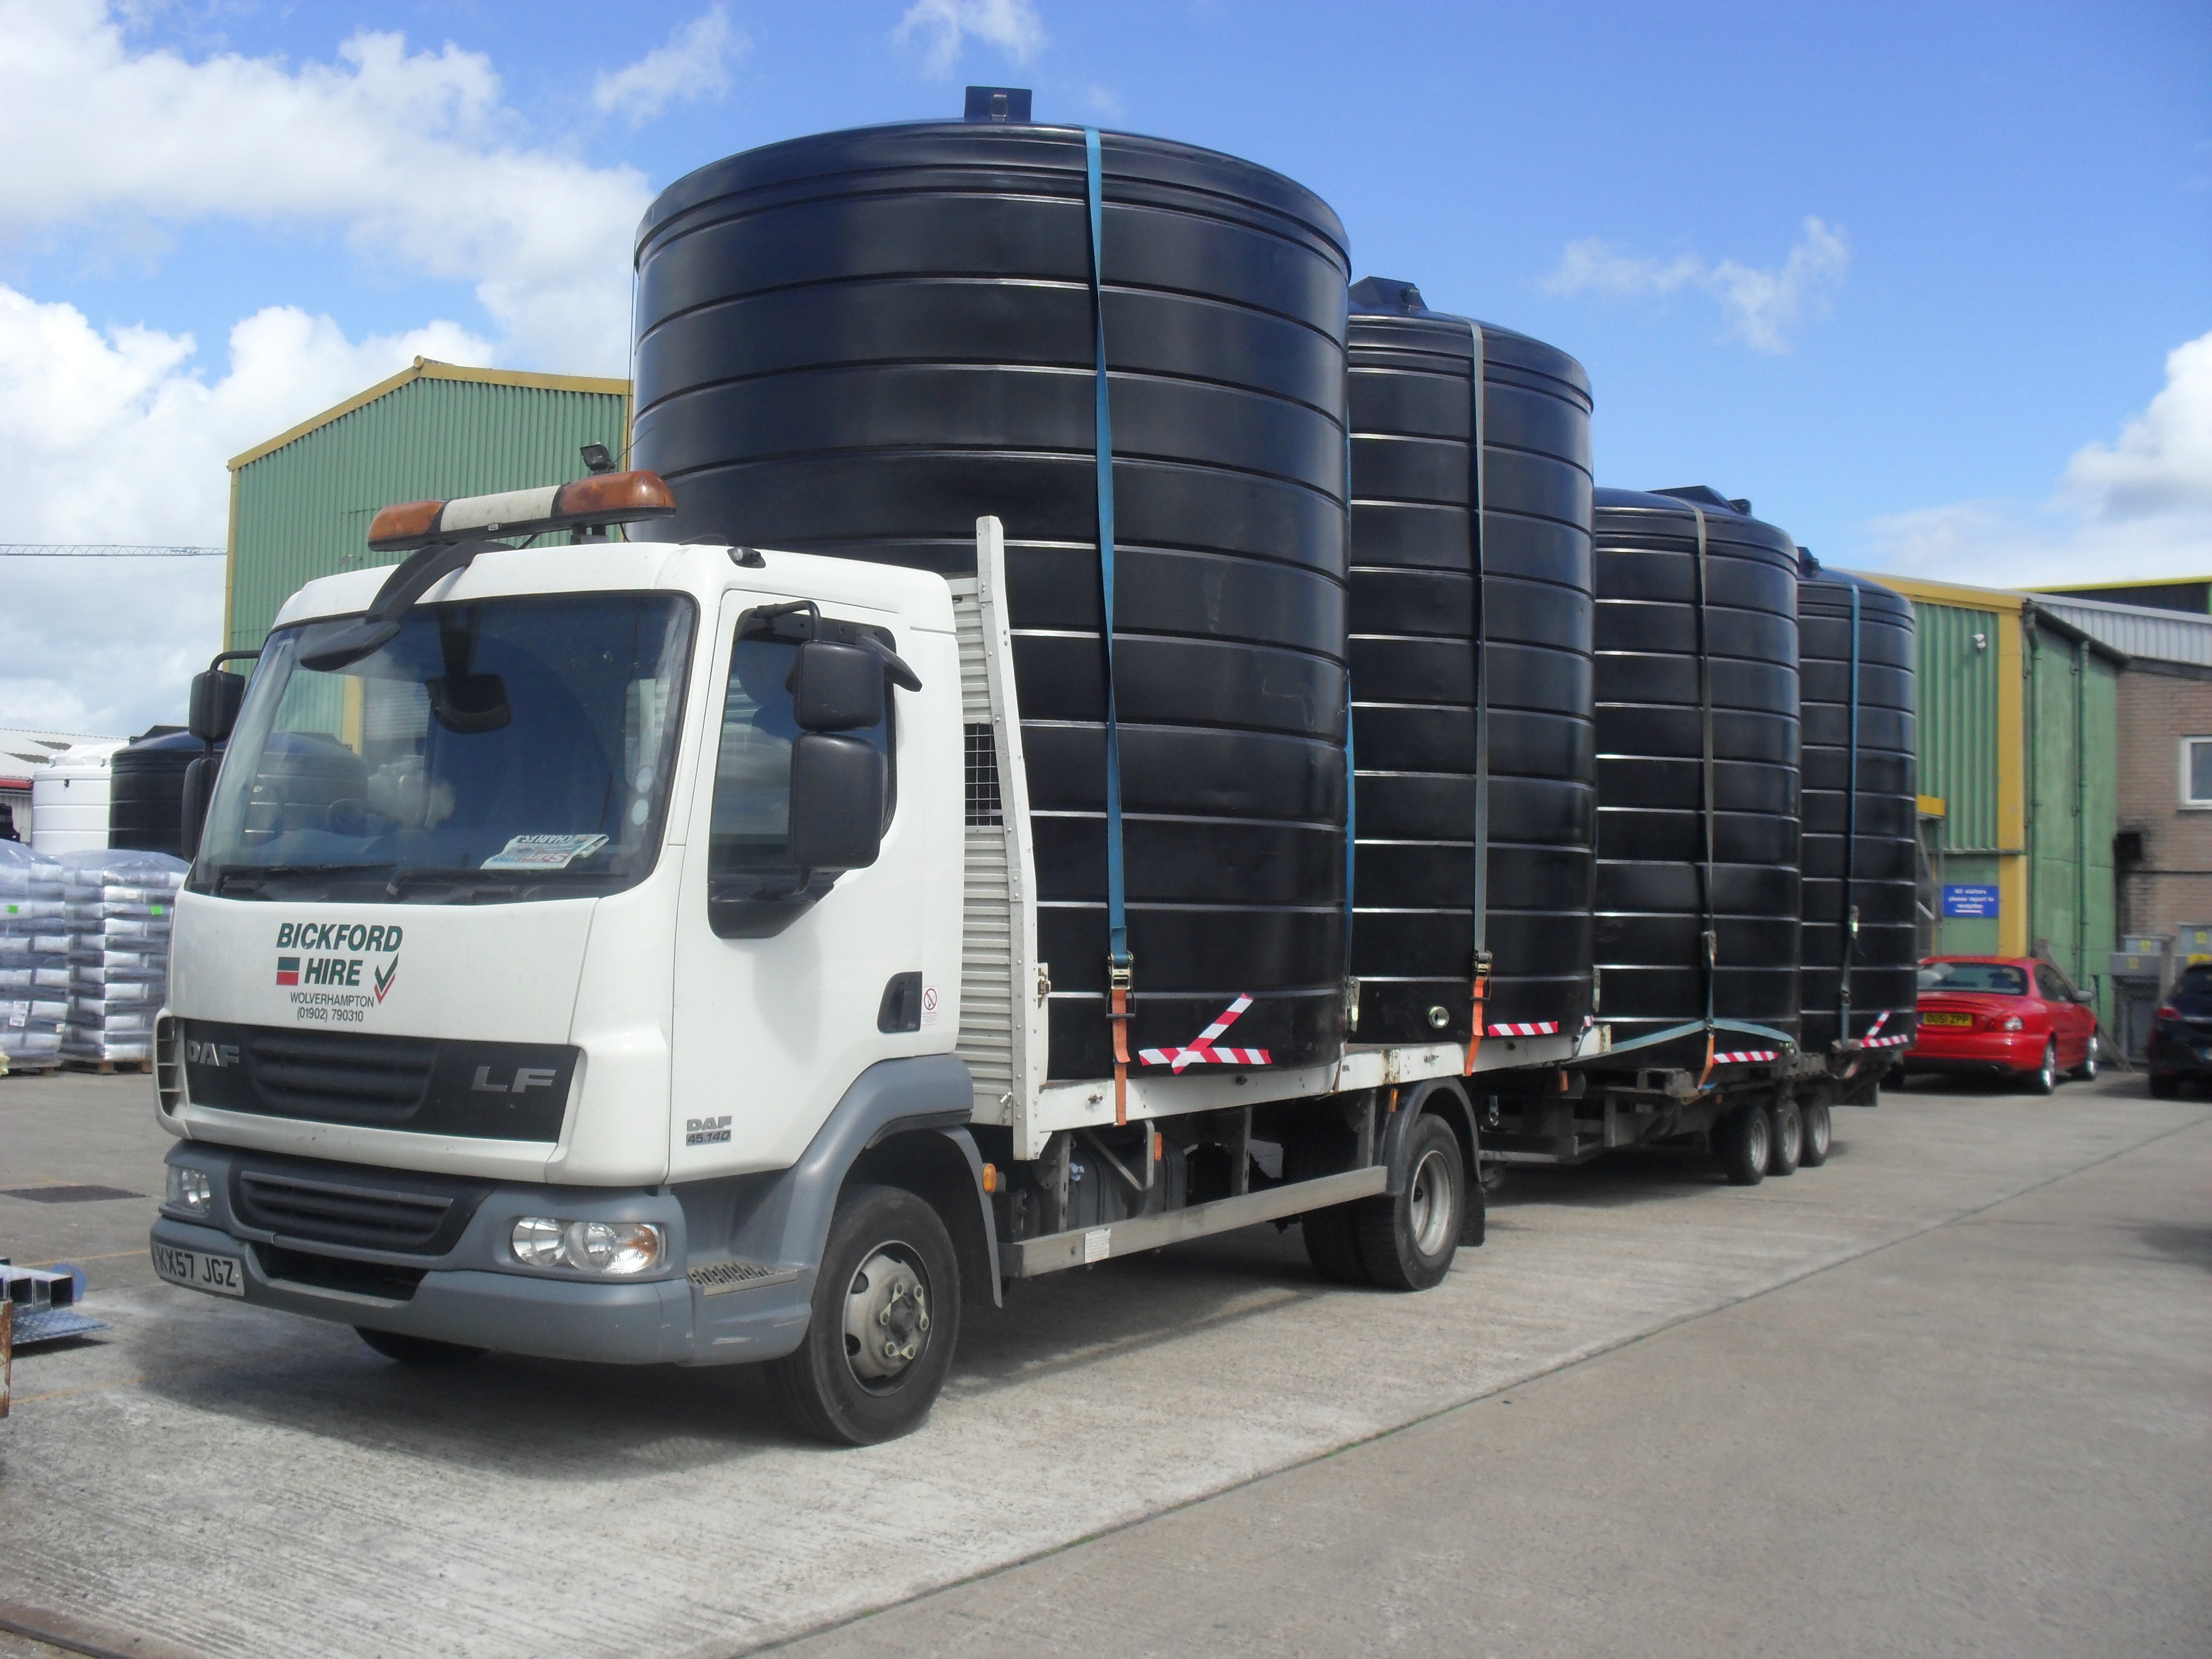 Four 20000 litre water storage tanks for Agriculutural Use